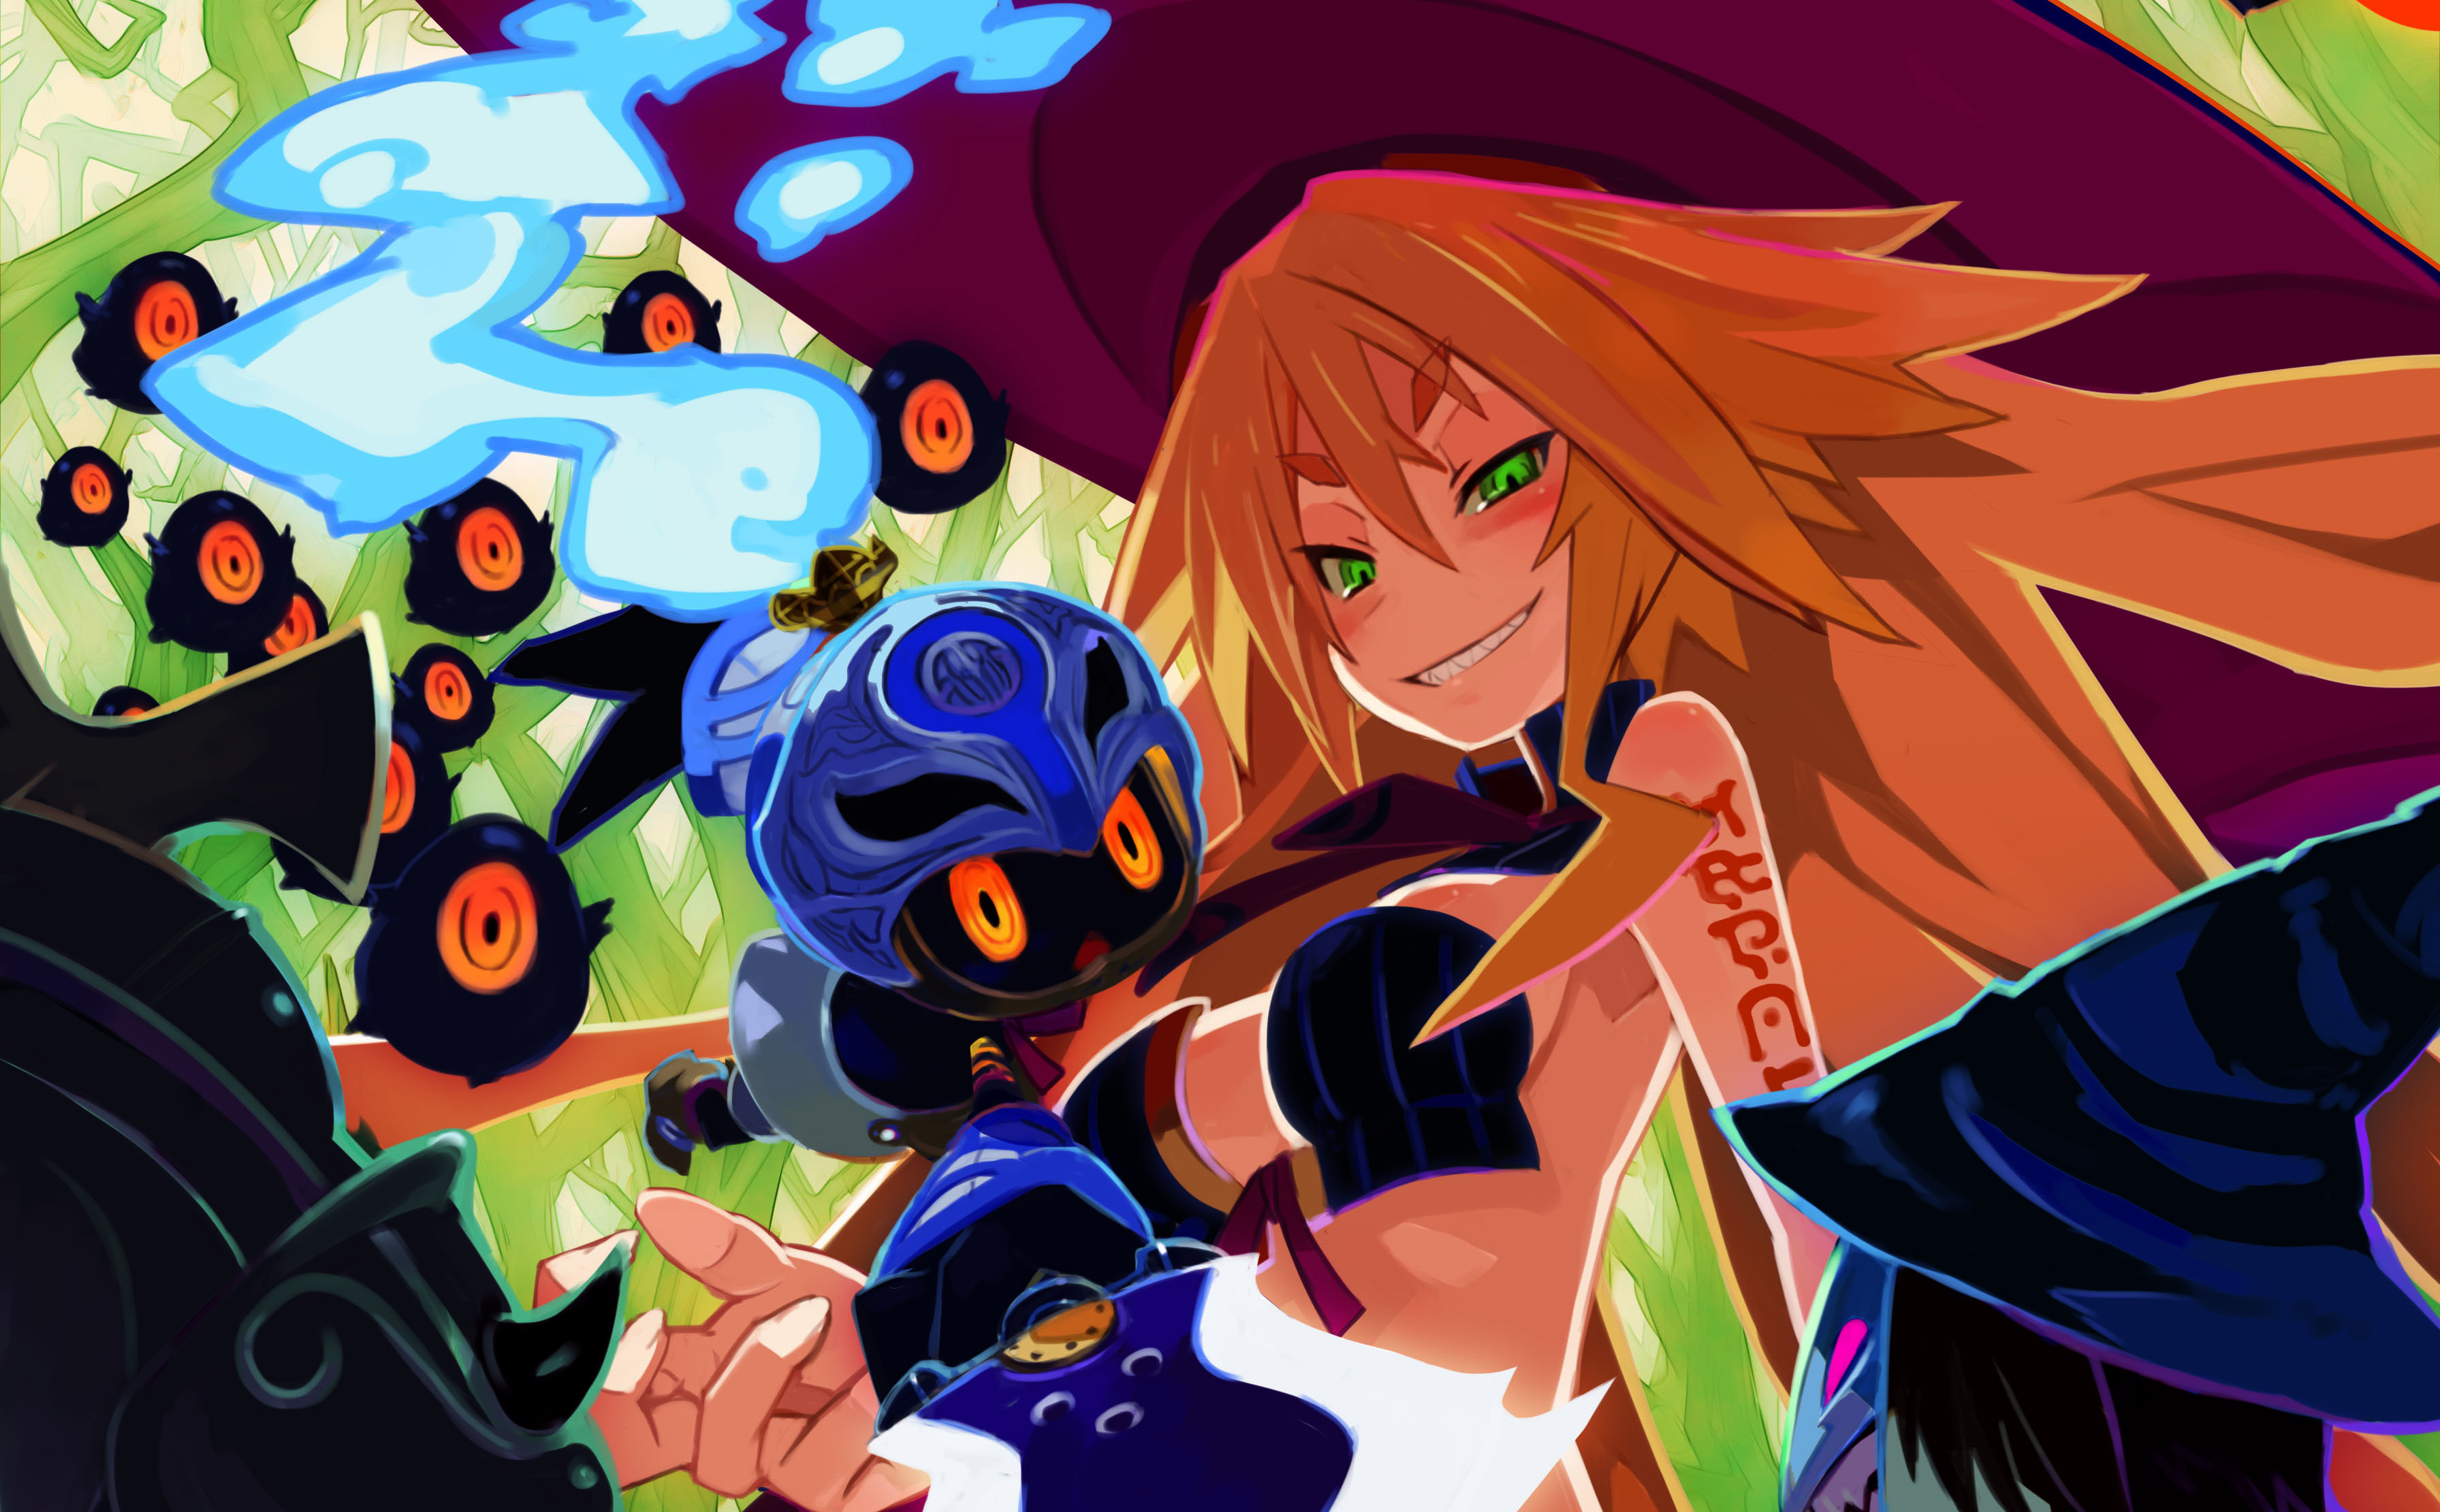 Hundred Knight